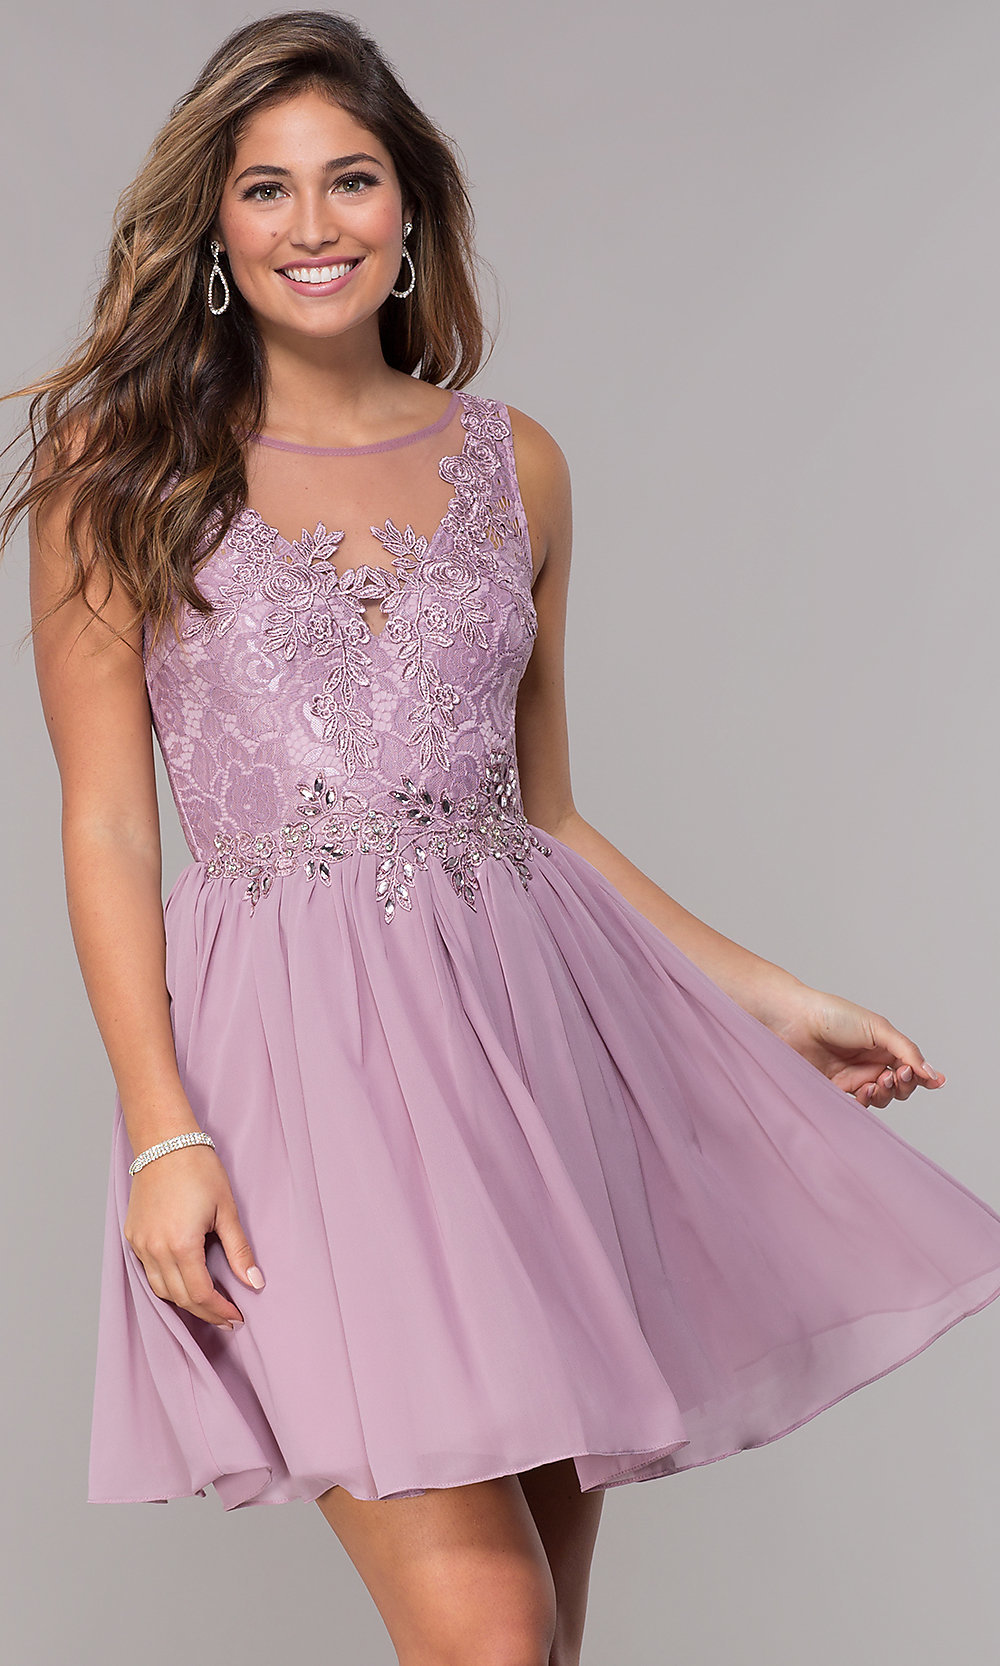 2873d3ae1c7 Short Chiffon Homecoming Dress With Lace Bodice - Data Dynamic AG